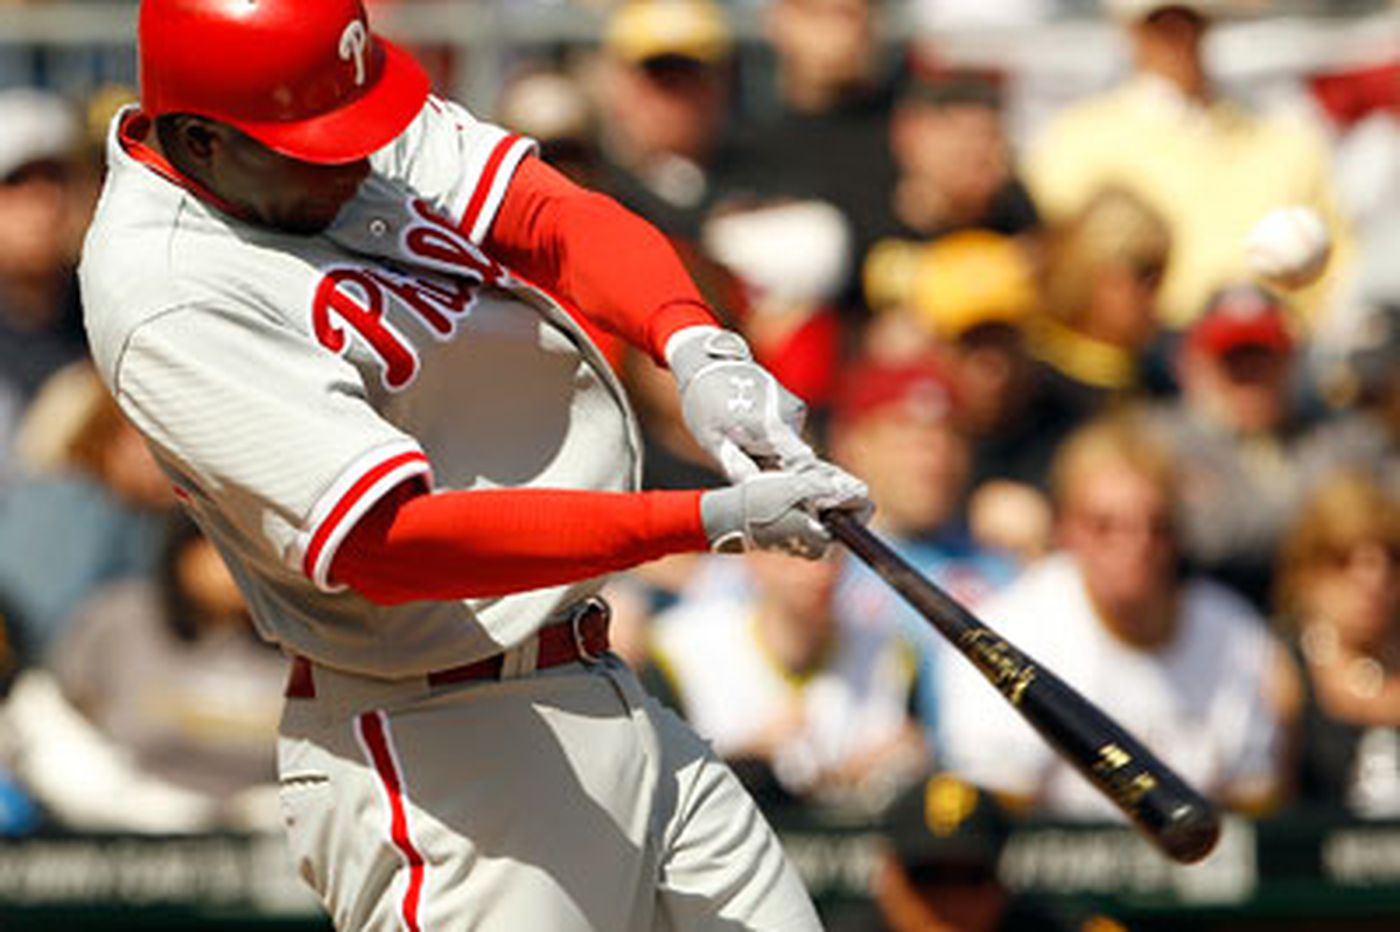 Phillies' Mayberry struggling at the plate